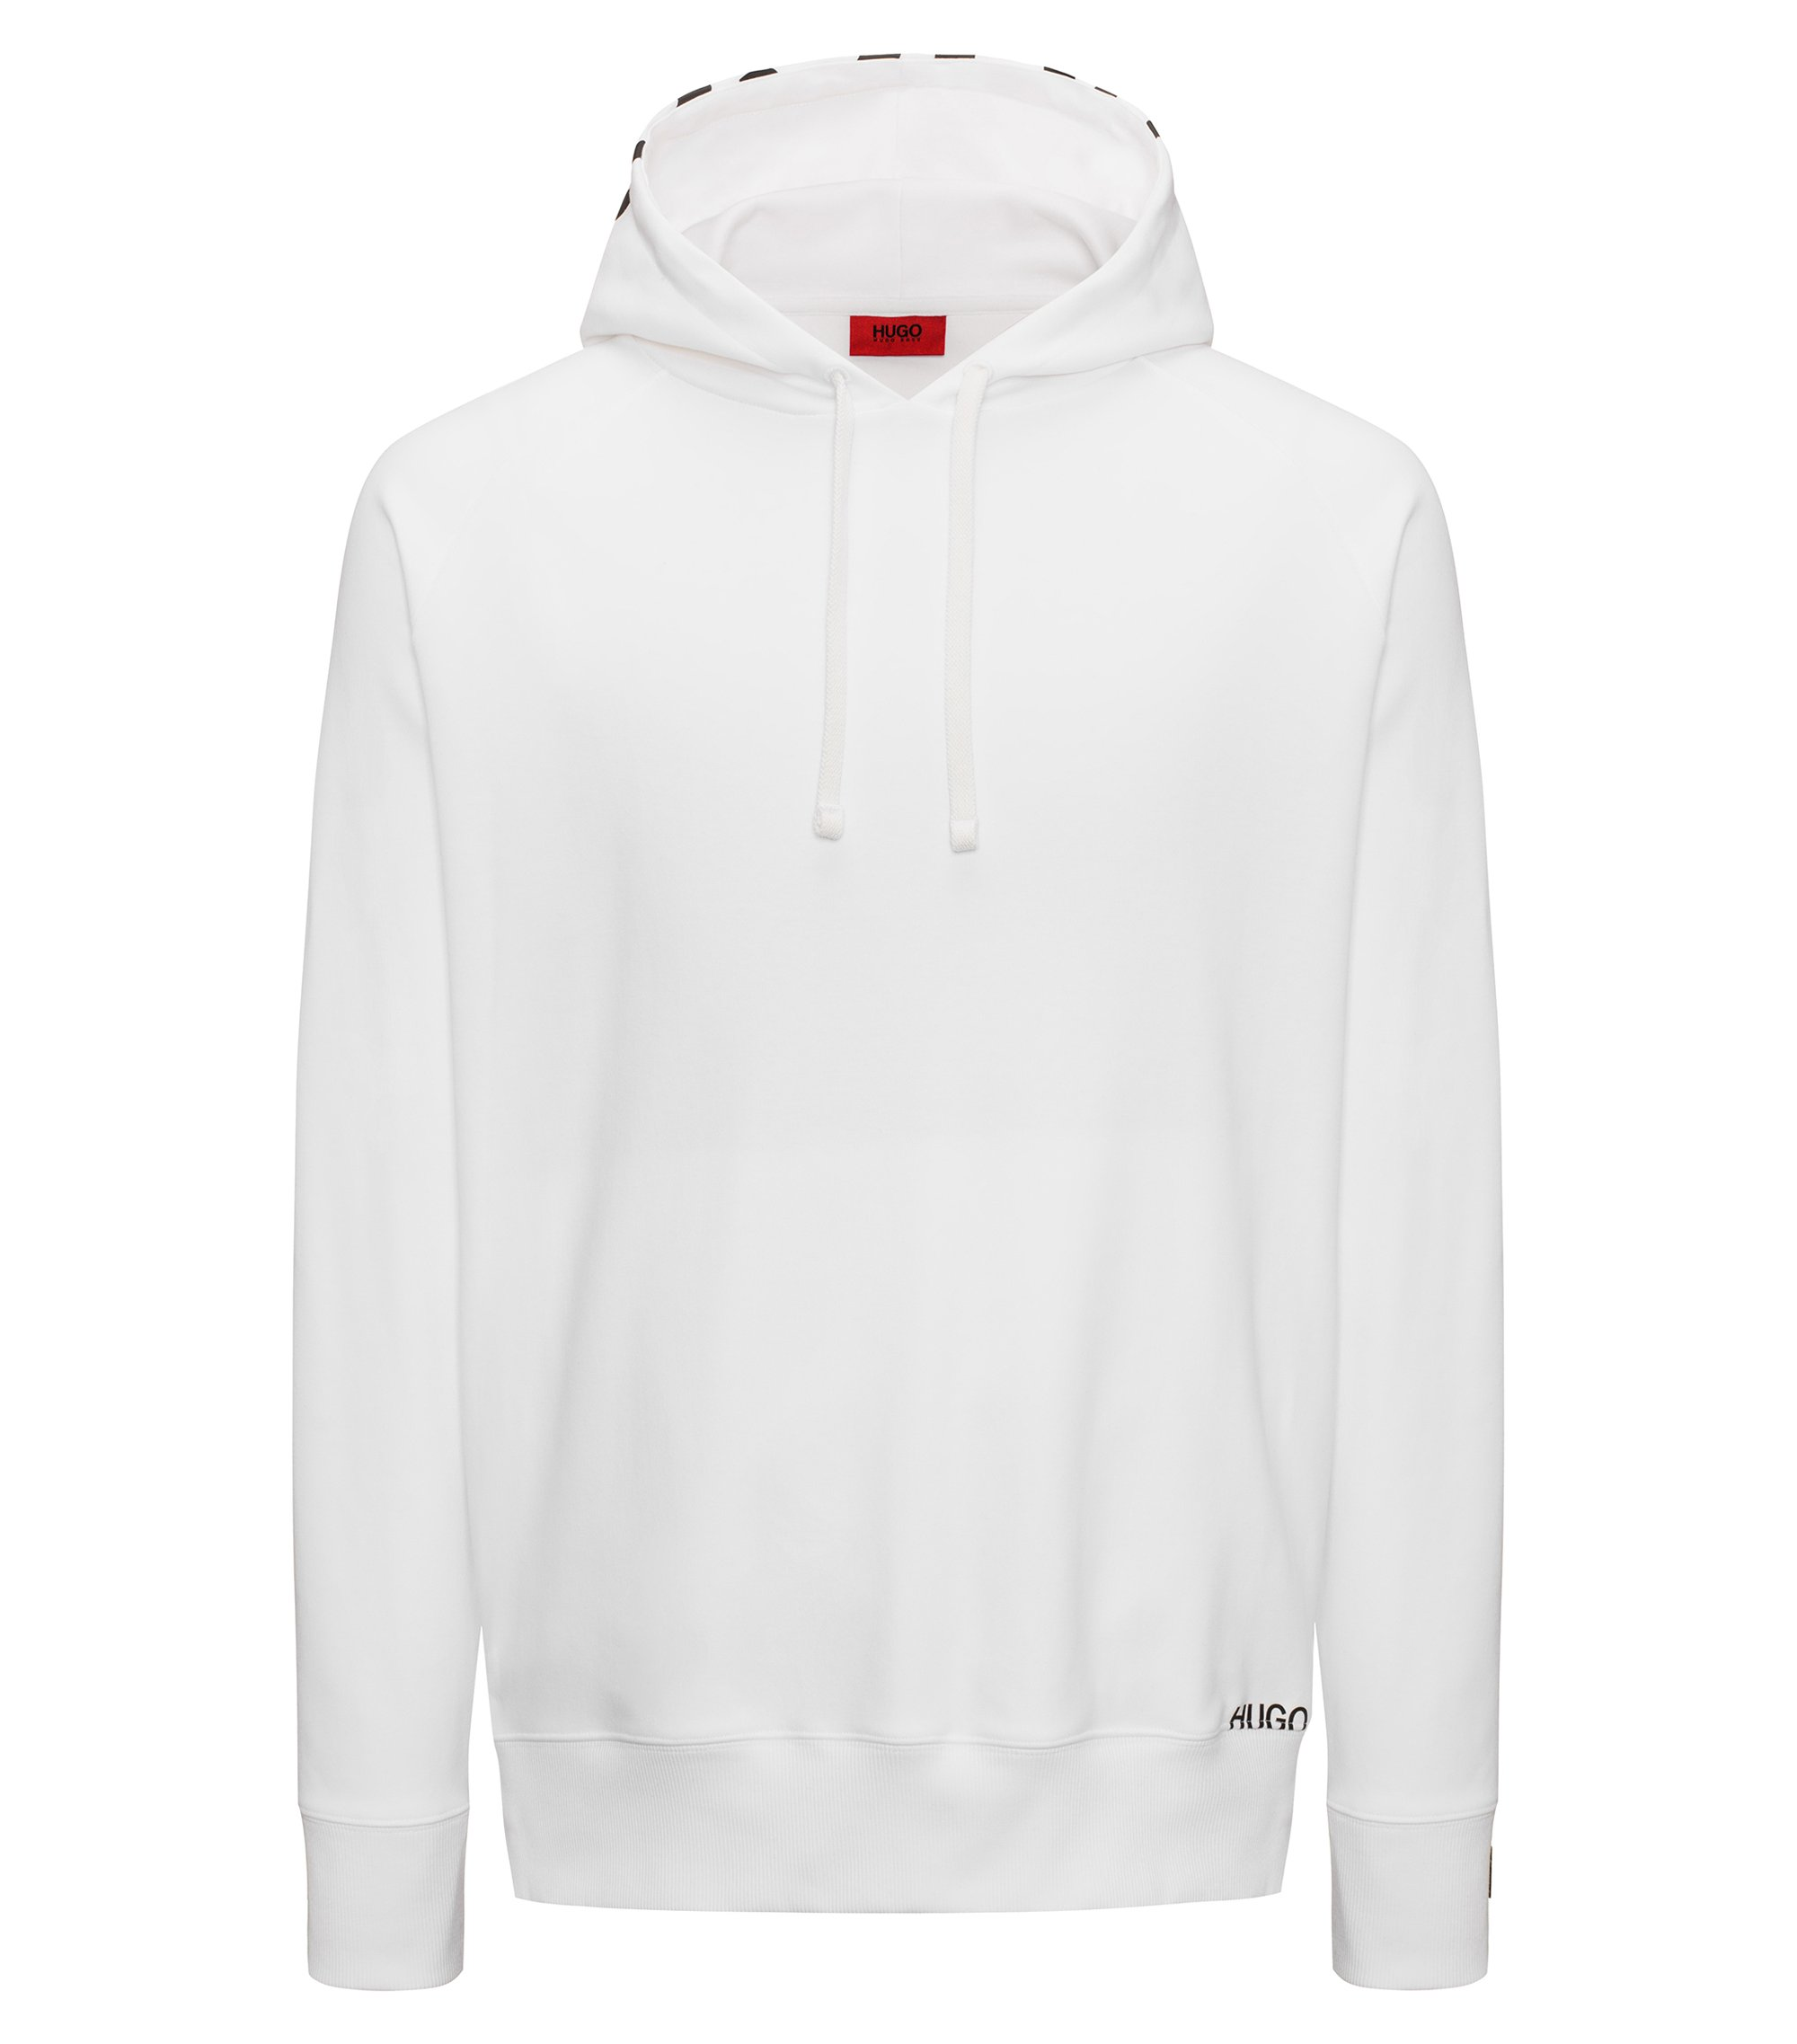 Sweat à capuche logo en coton interlock, Blanc